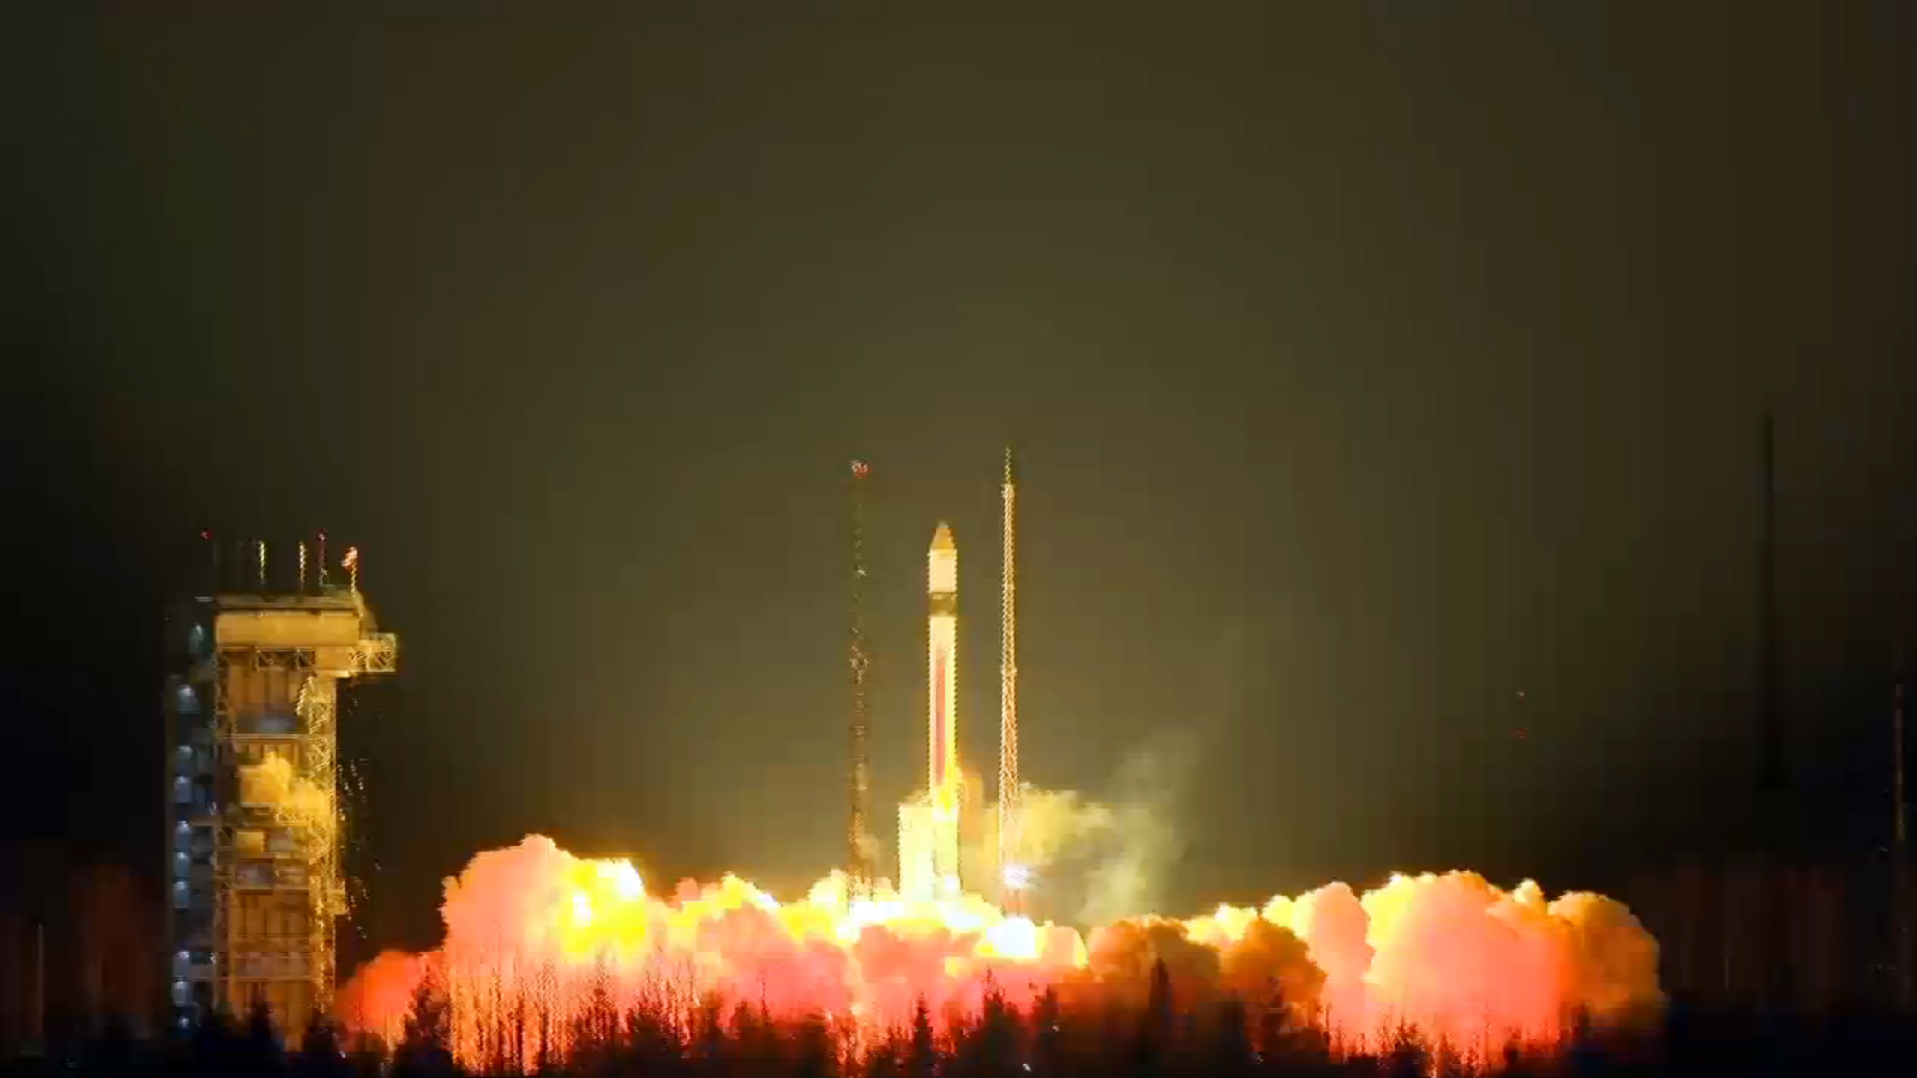 The Sentinel 3A satellite lifted off at 1757:40 GMT (12:57:40 p.m. EST). Credit: ESA